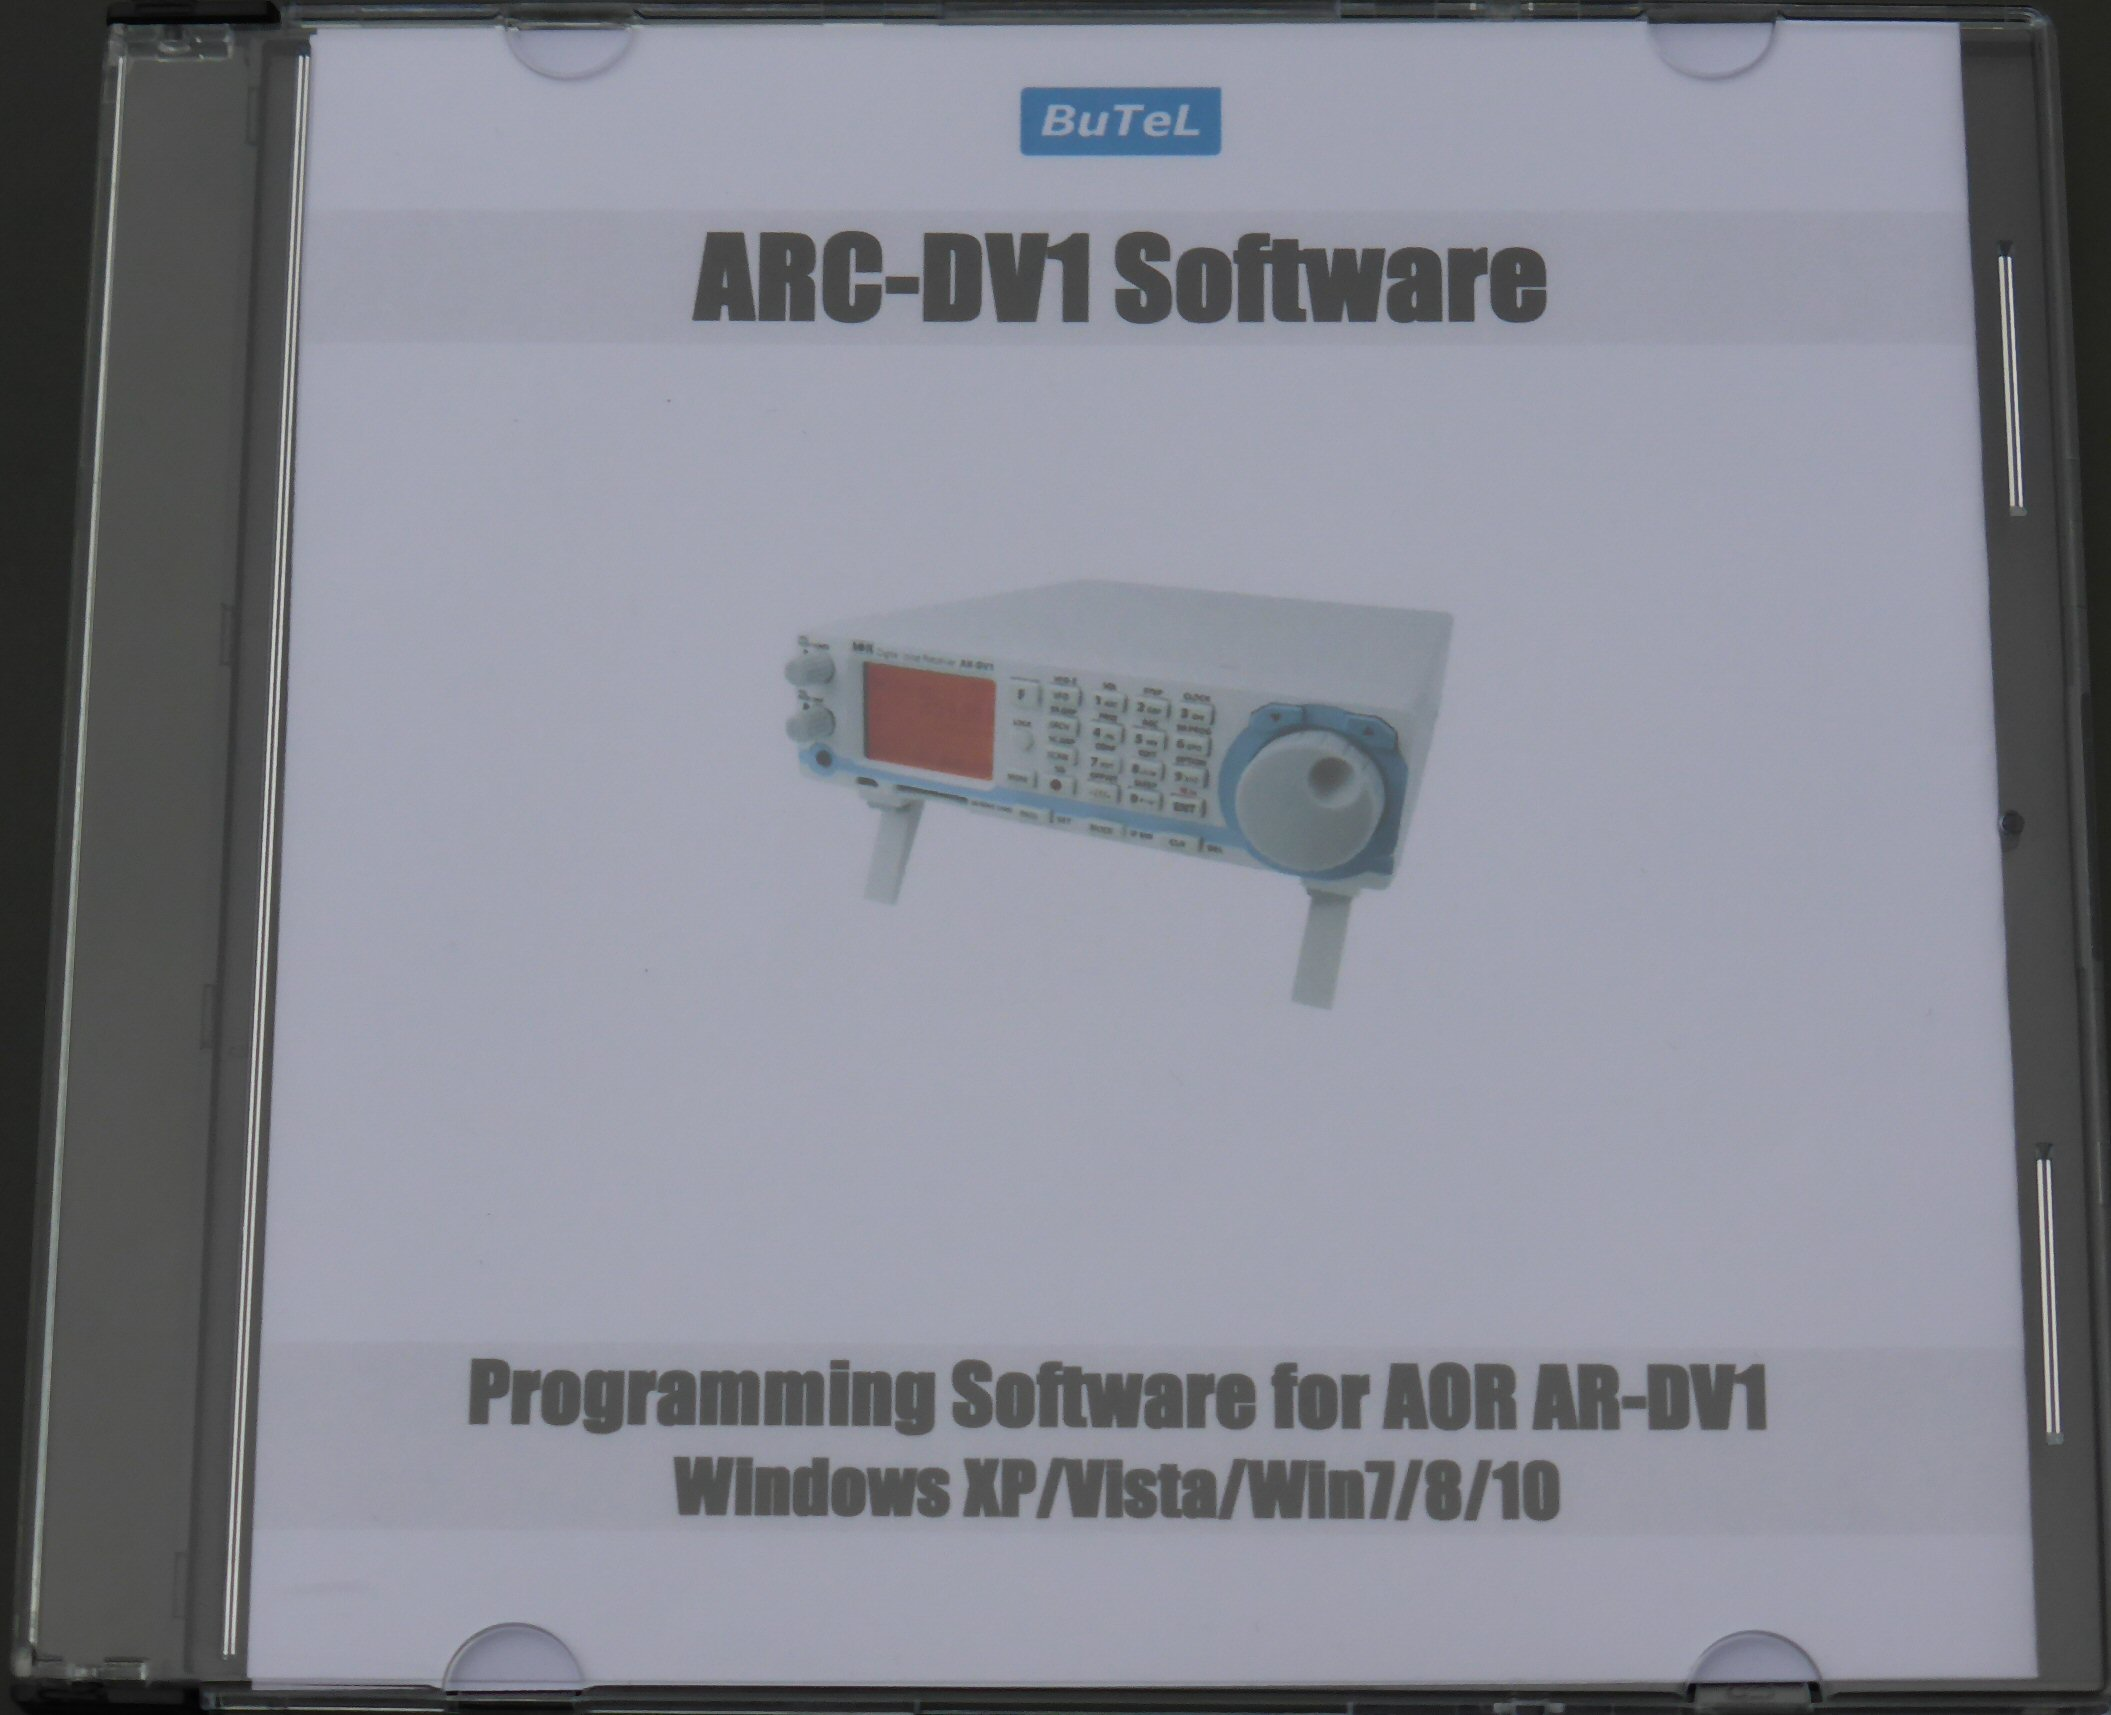 ARC-DV1-software-AOR-AR-DV1